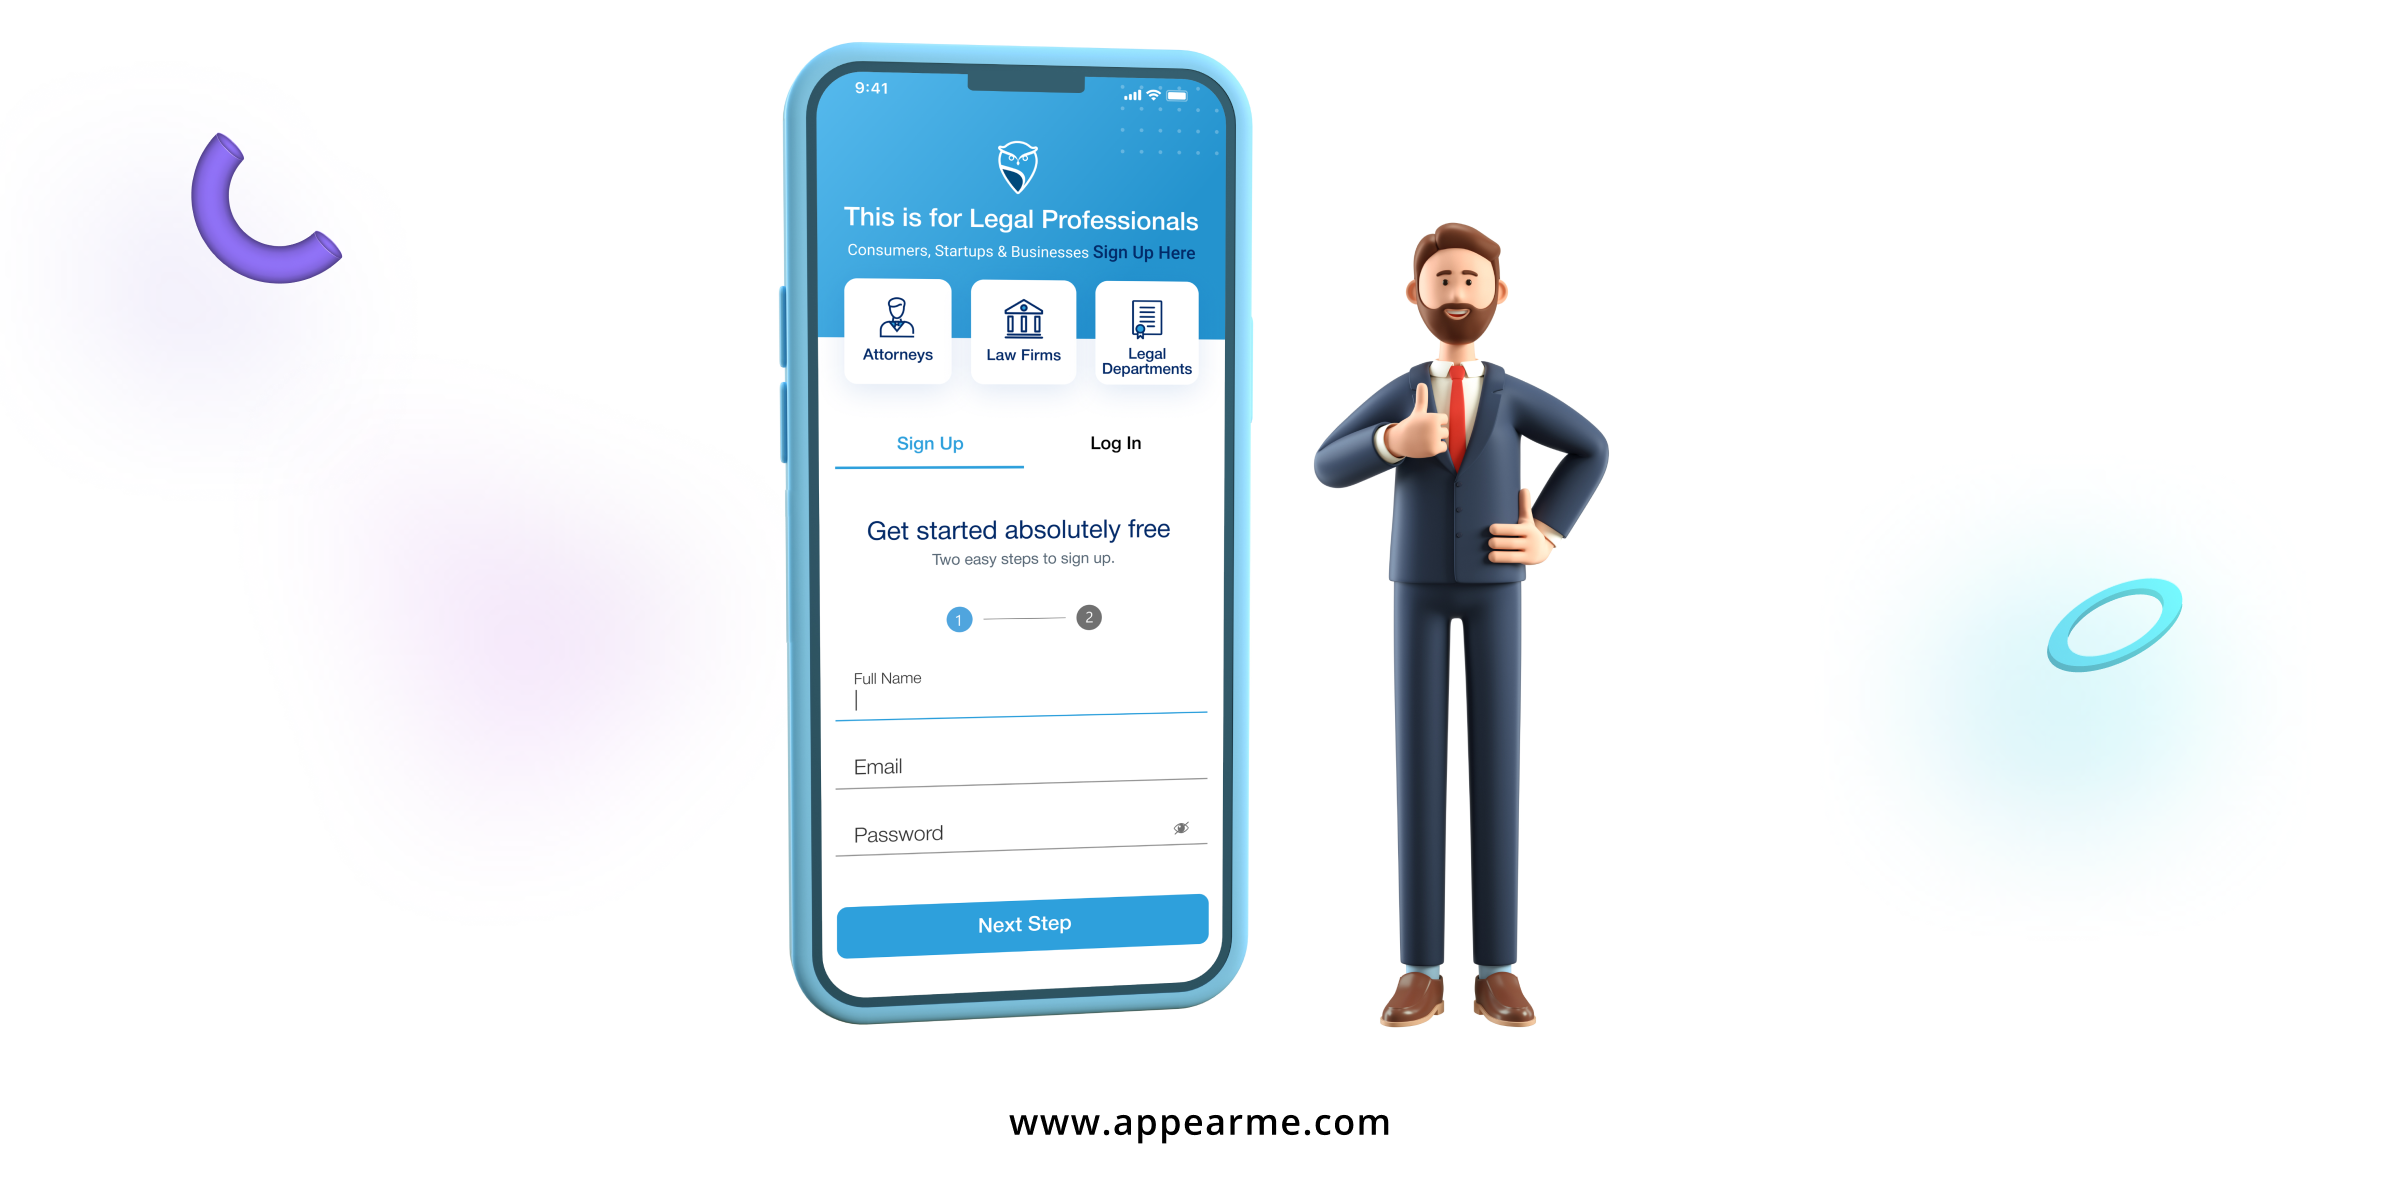 Struggling with Managing Your Caseload? Download AppearMe